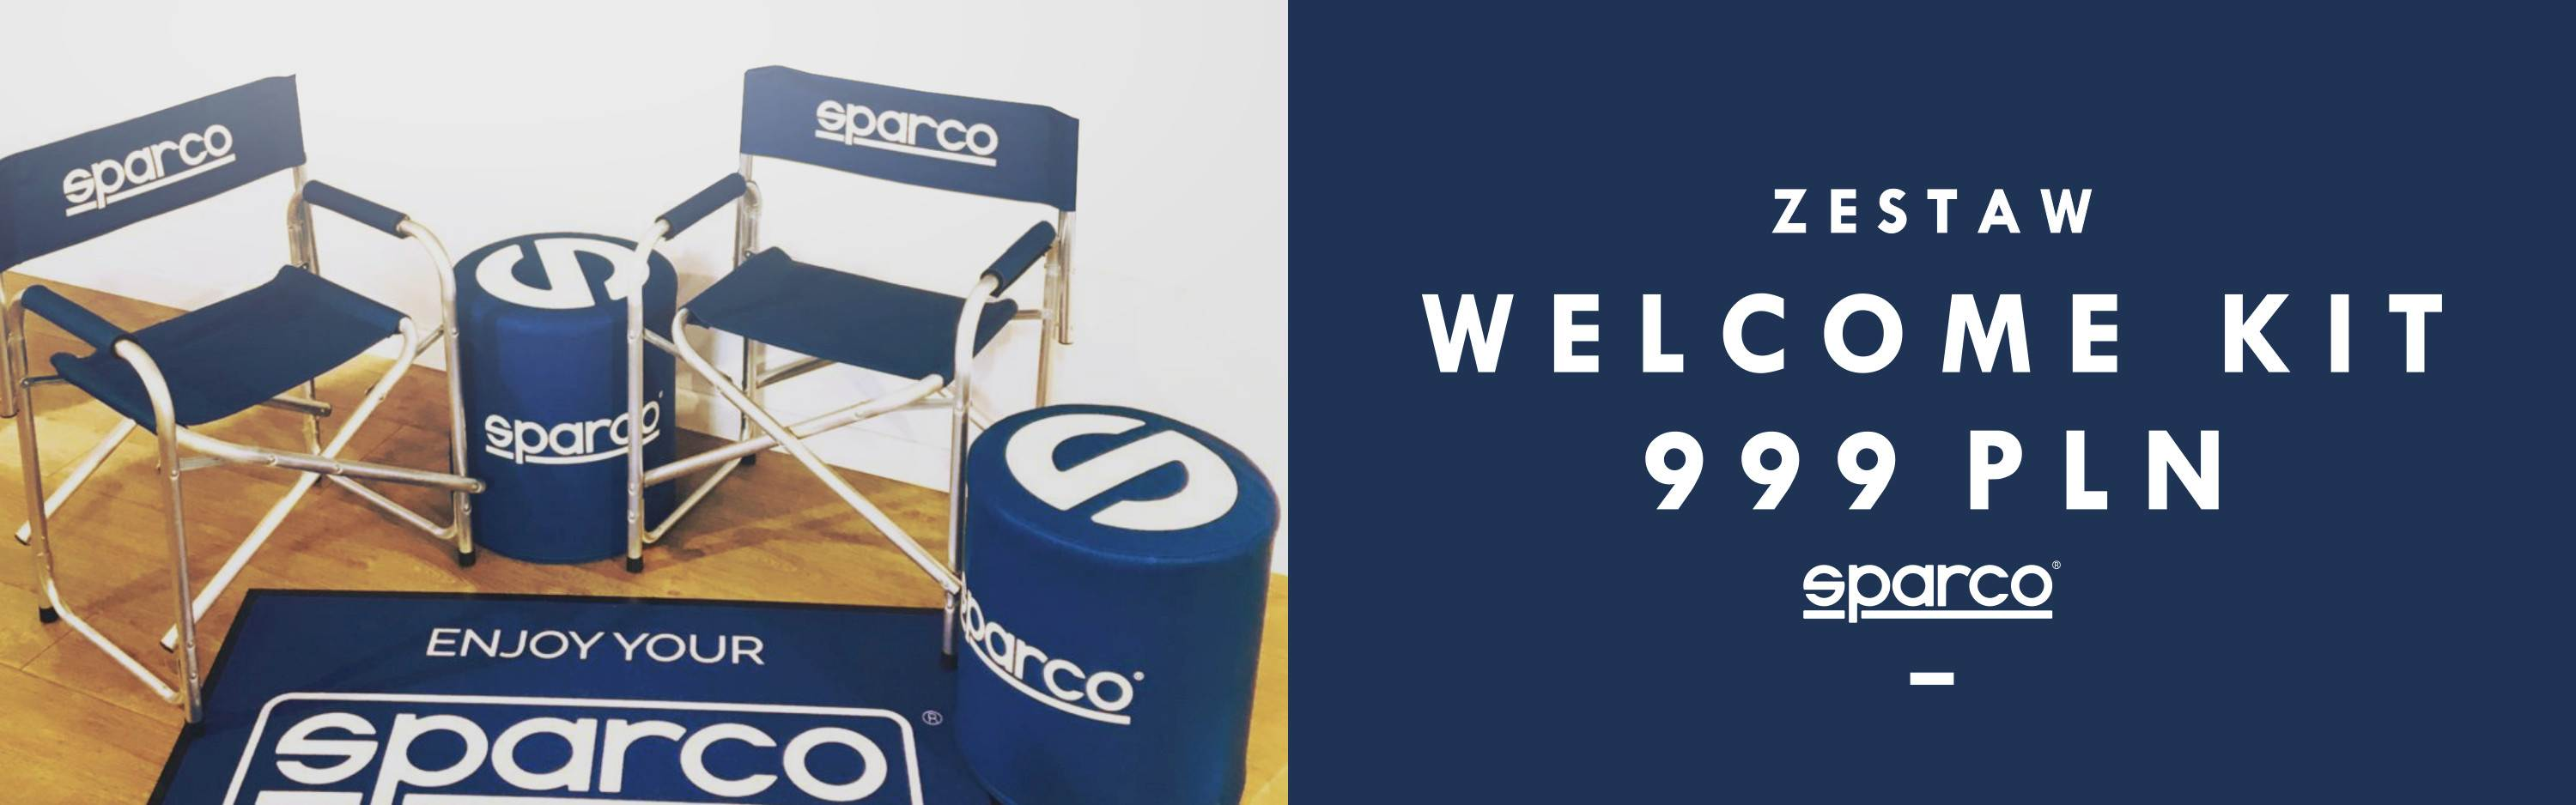 Zestaw Sparco Welcome Kit